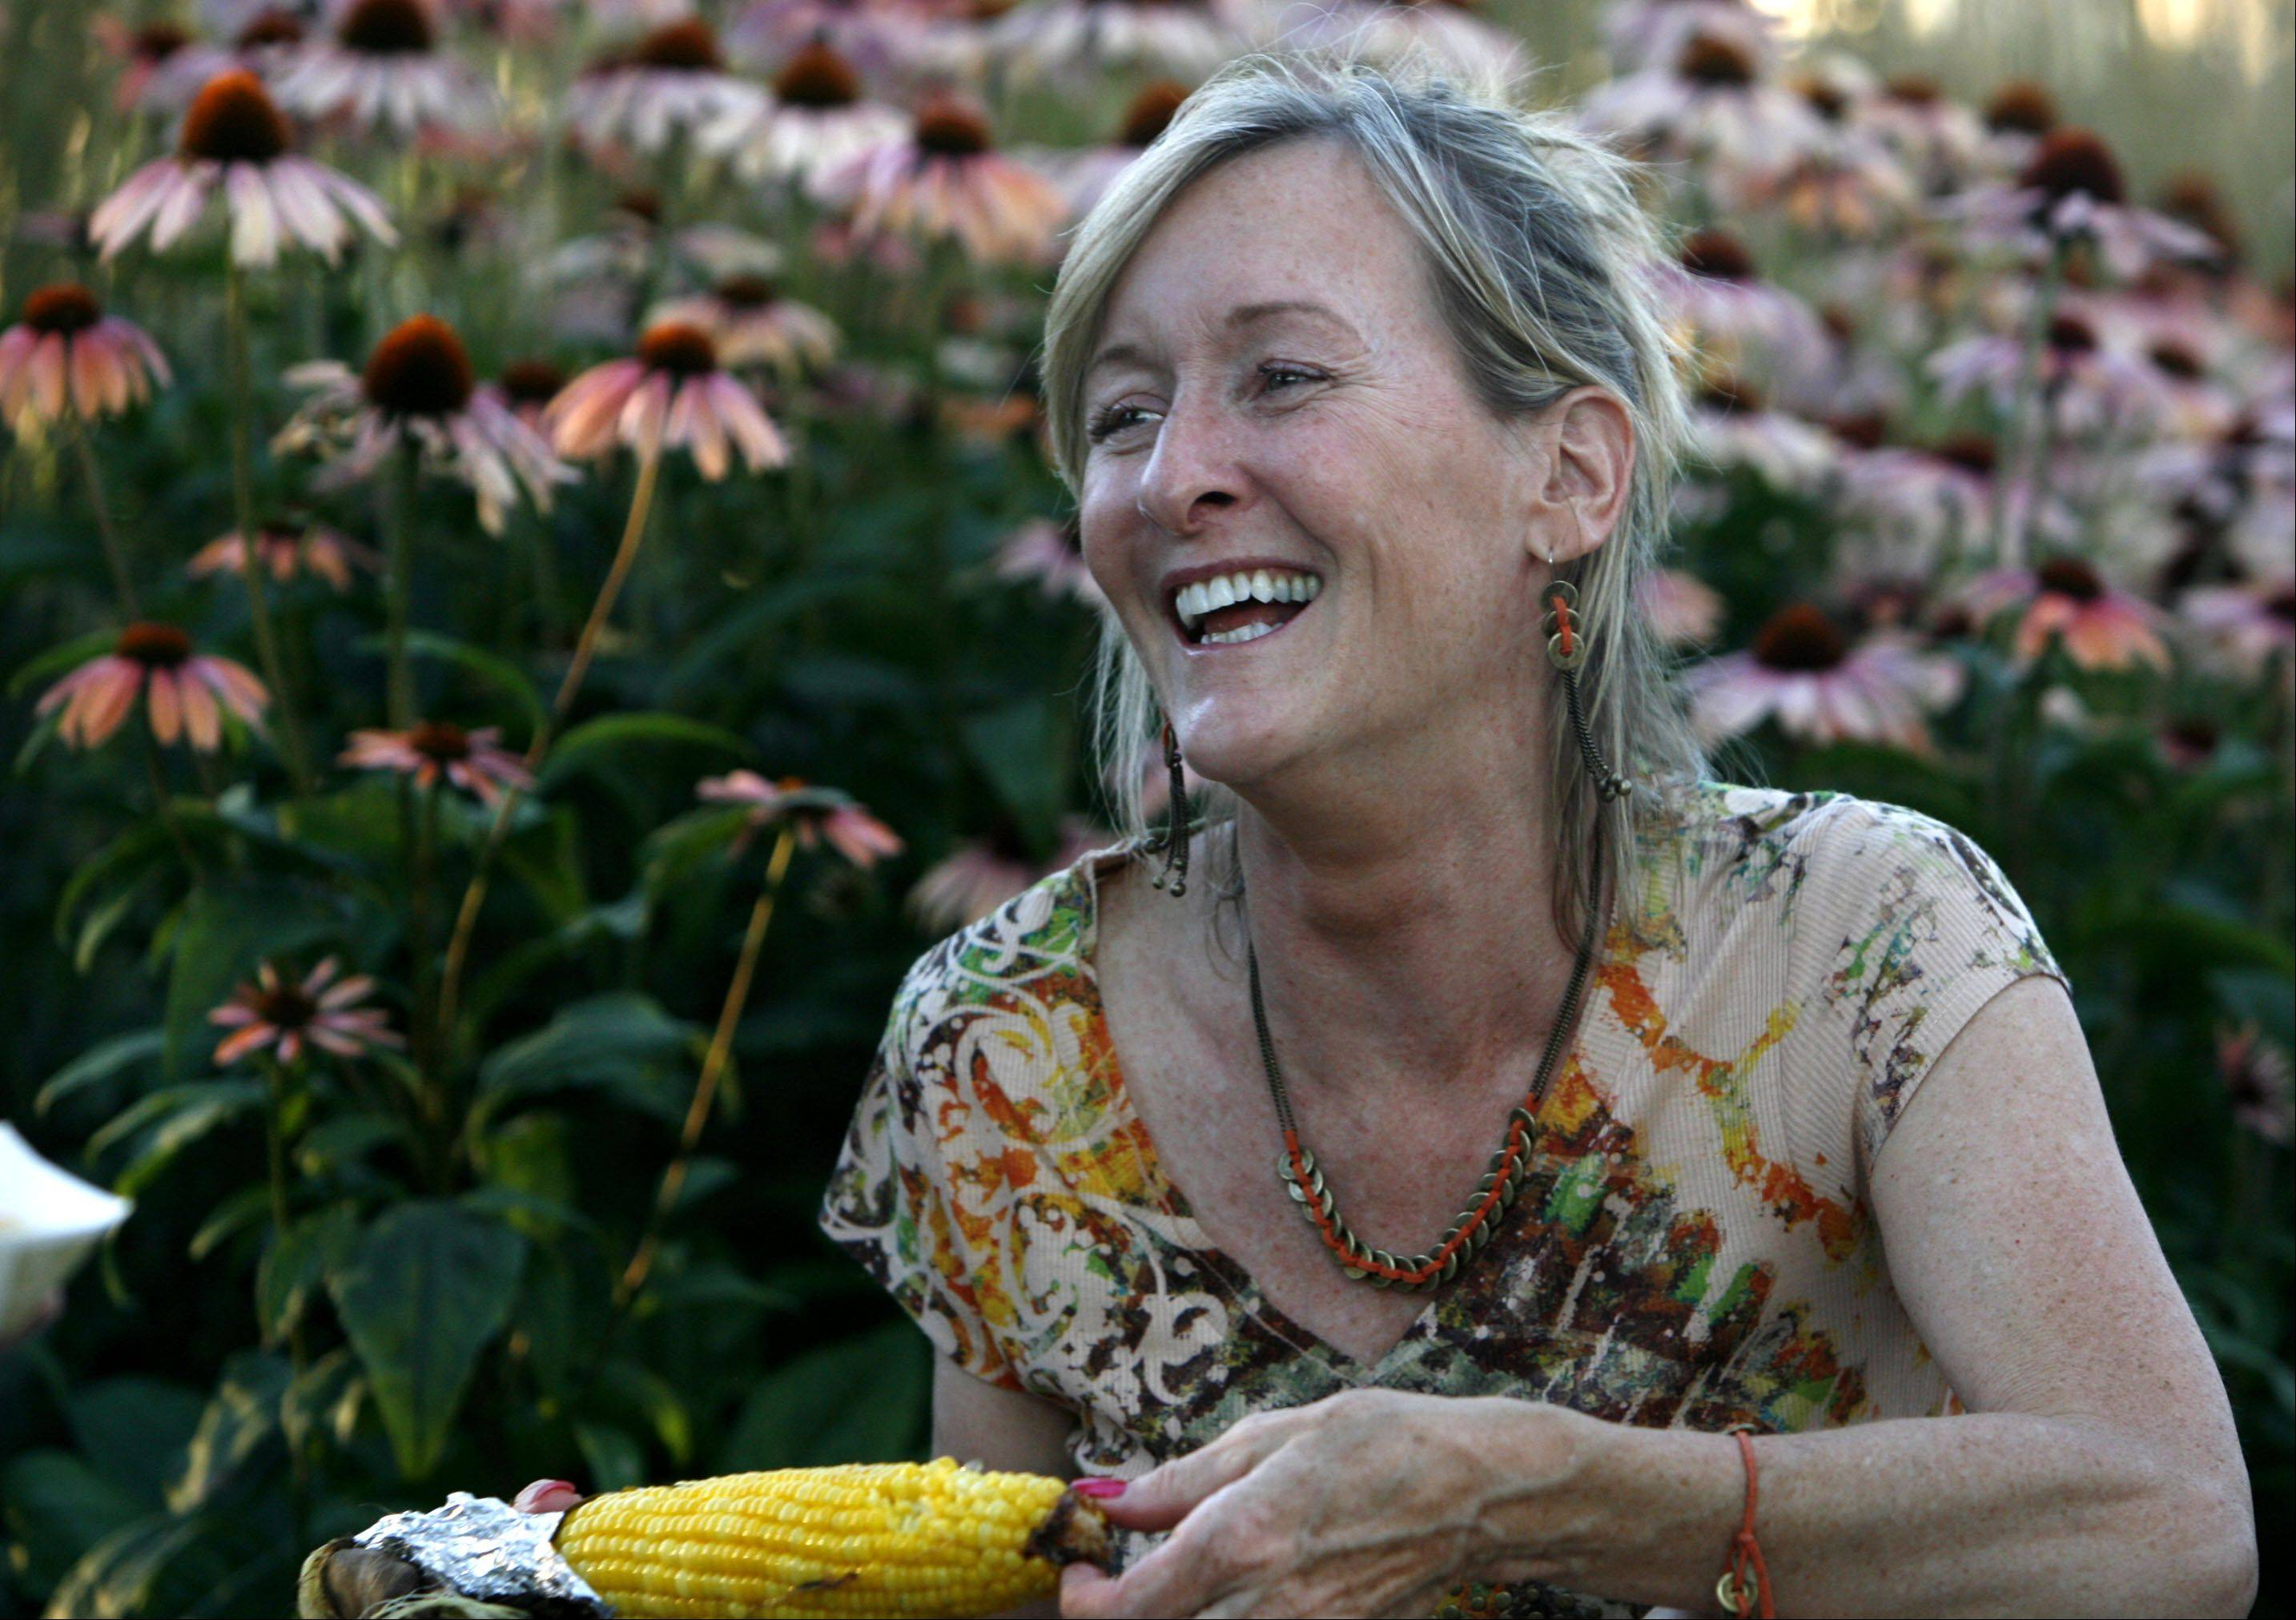 GEORGE LECLAIRE/gleclaire@dailyherald.com Donna Carmody of Mt. Prospect enjoys a laugh with a friend as she eats grilled corn while sitting in front of a bed of flowers at the Taste of Lincolnshire 2010.